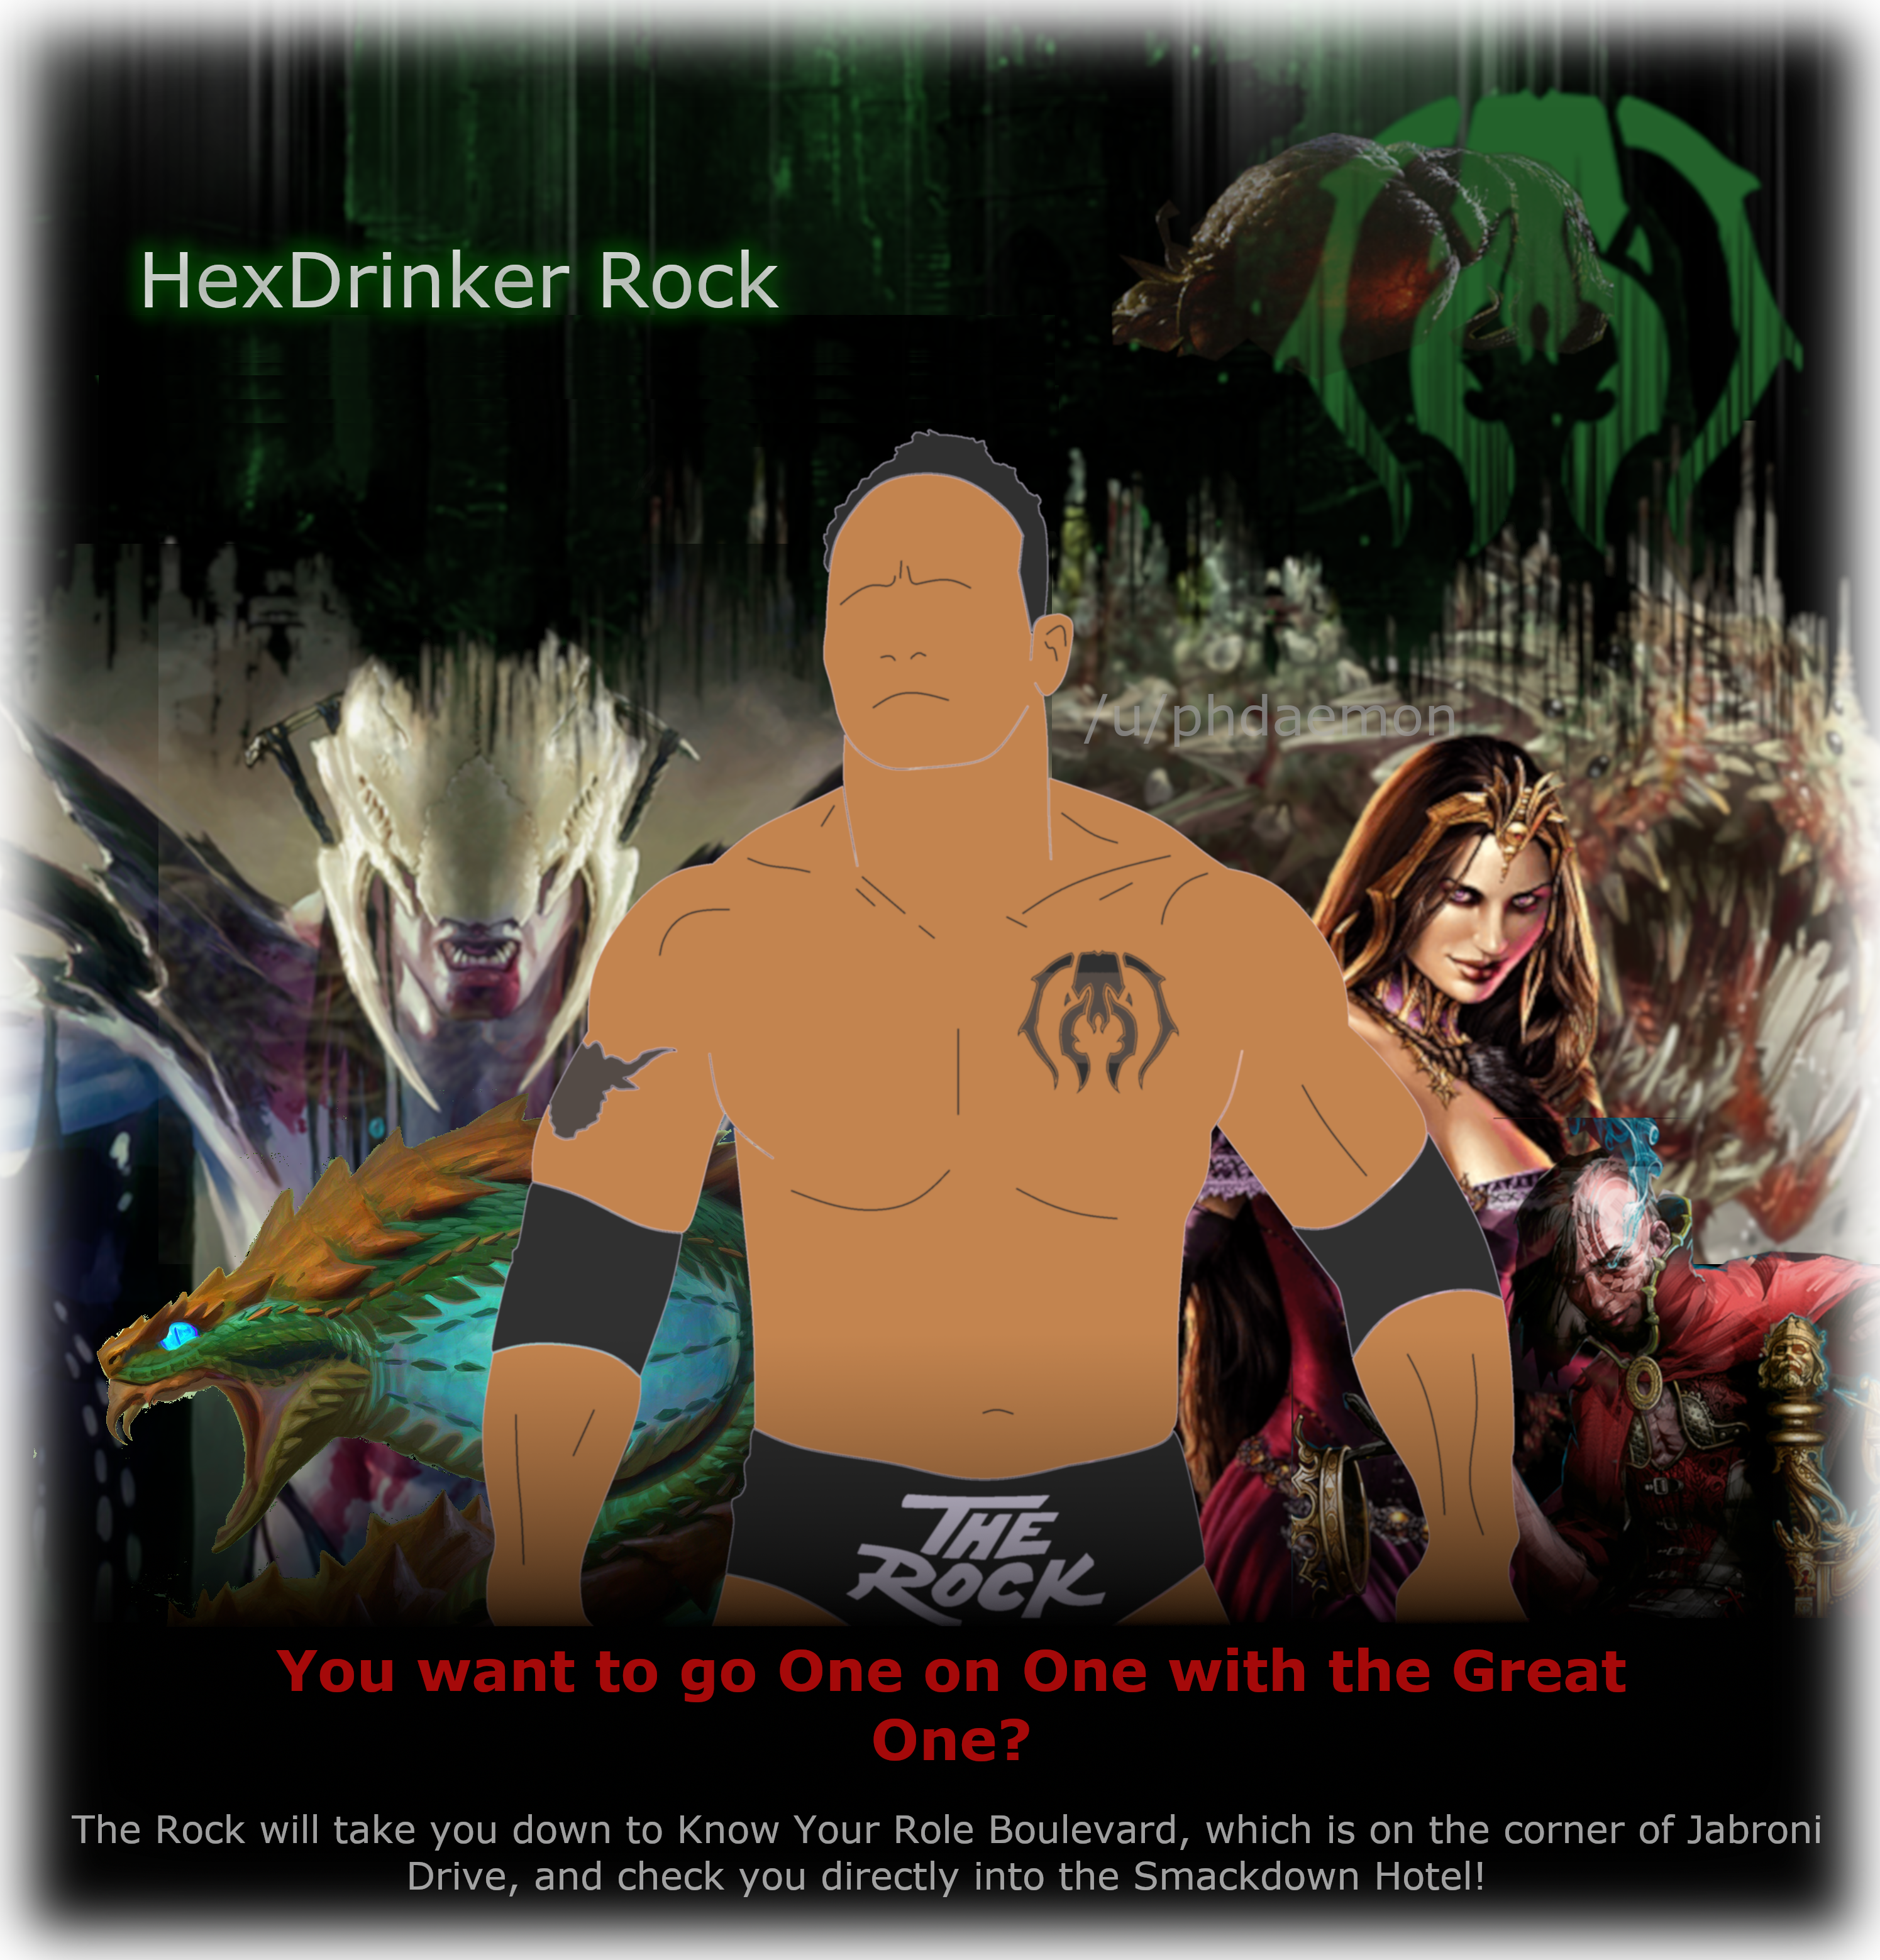 The rock will kick your roody poo candy ass